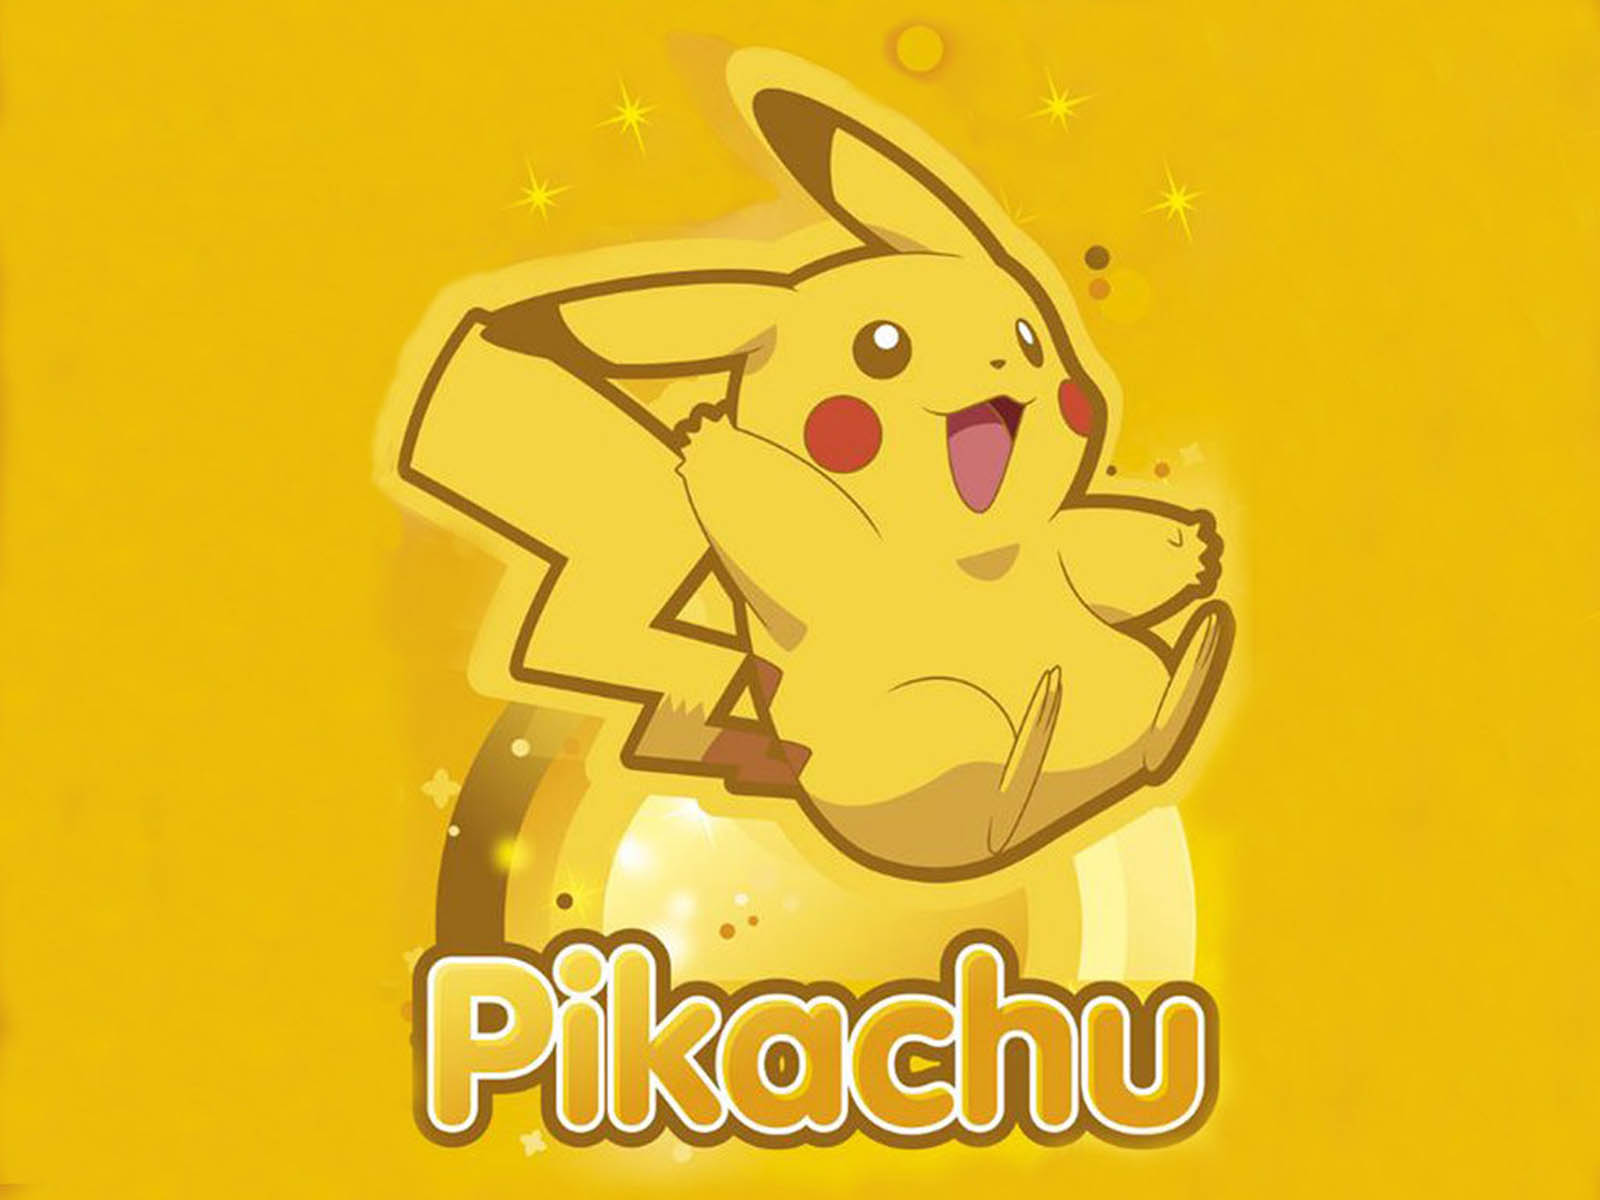 Beautiful Wallpapers For Desktop With Quotes Wallpapers Pikachu Pokemon